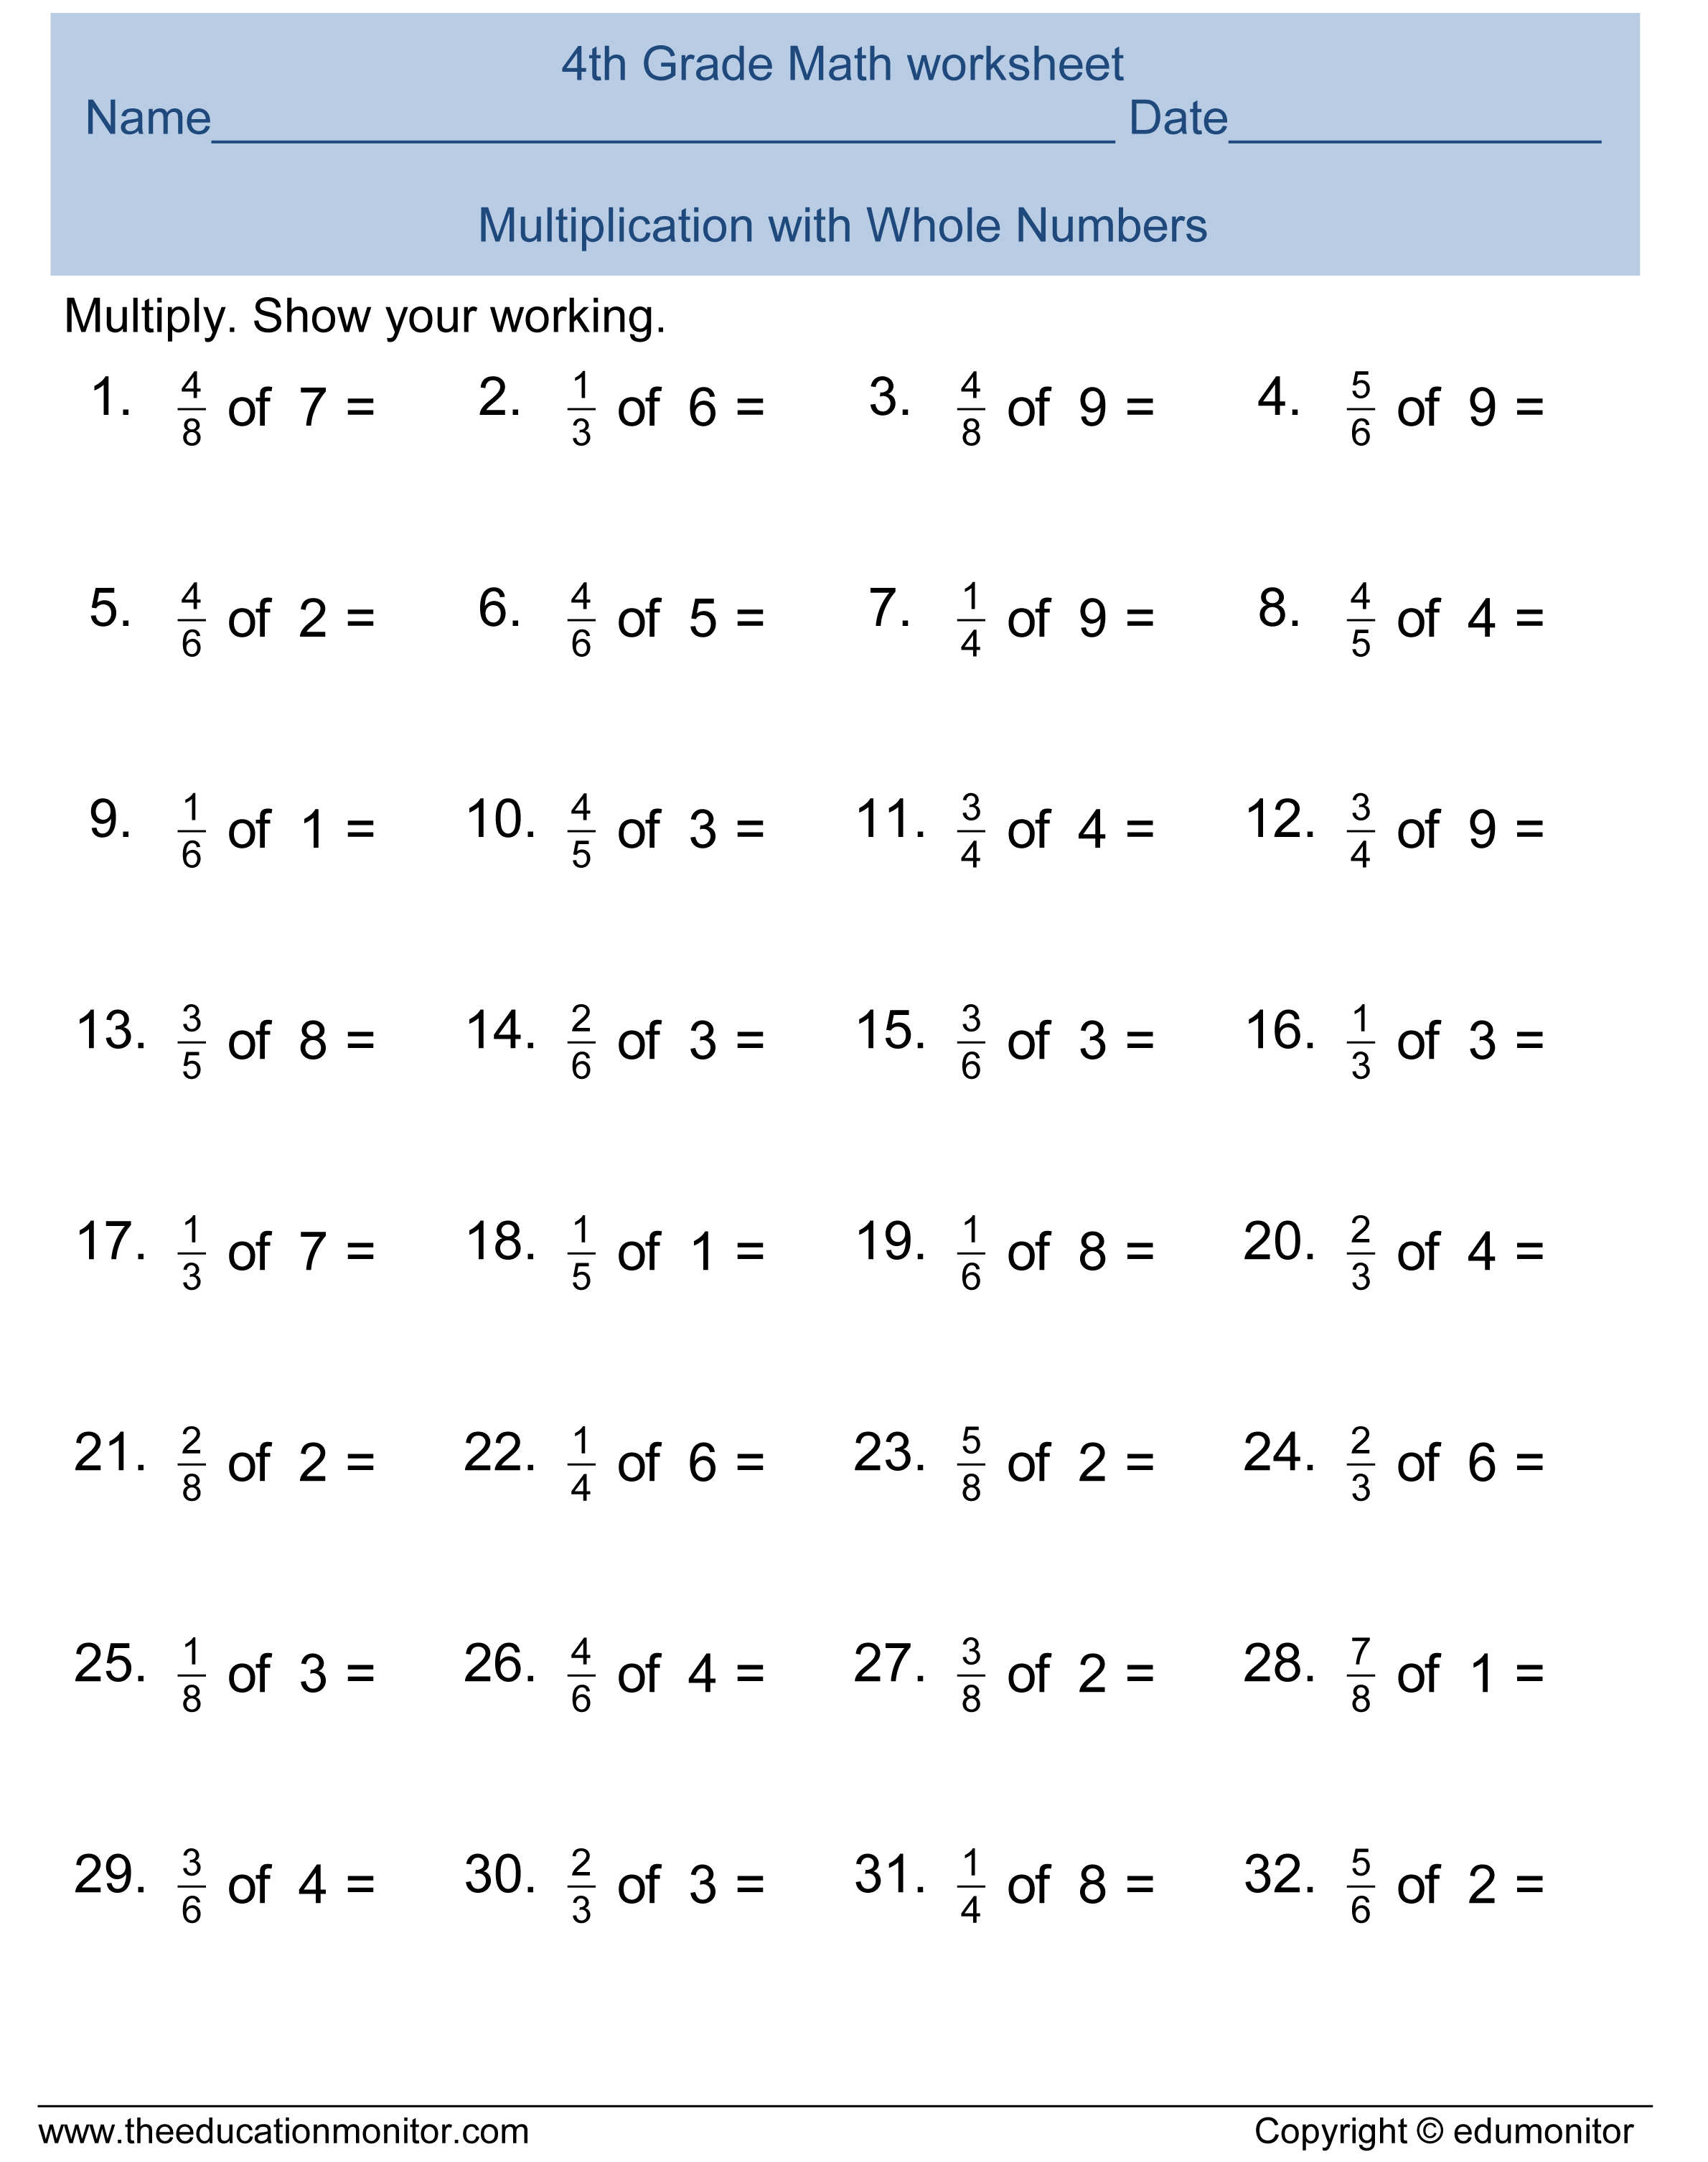 Adding And Subtracting Fractions Worksheets Free Scalien – Worksheets for Adding and Subtracting Fractions